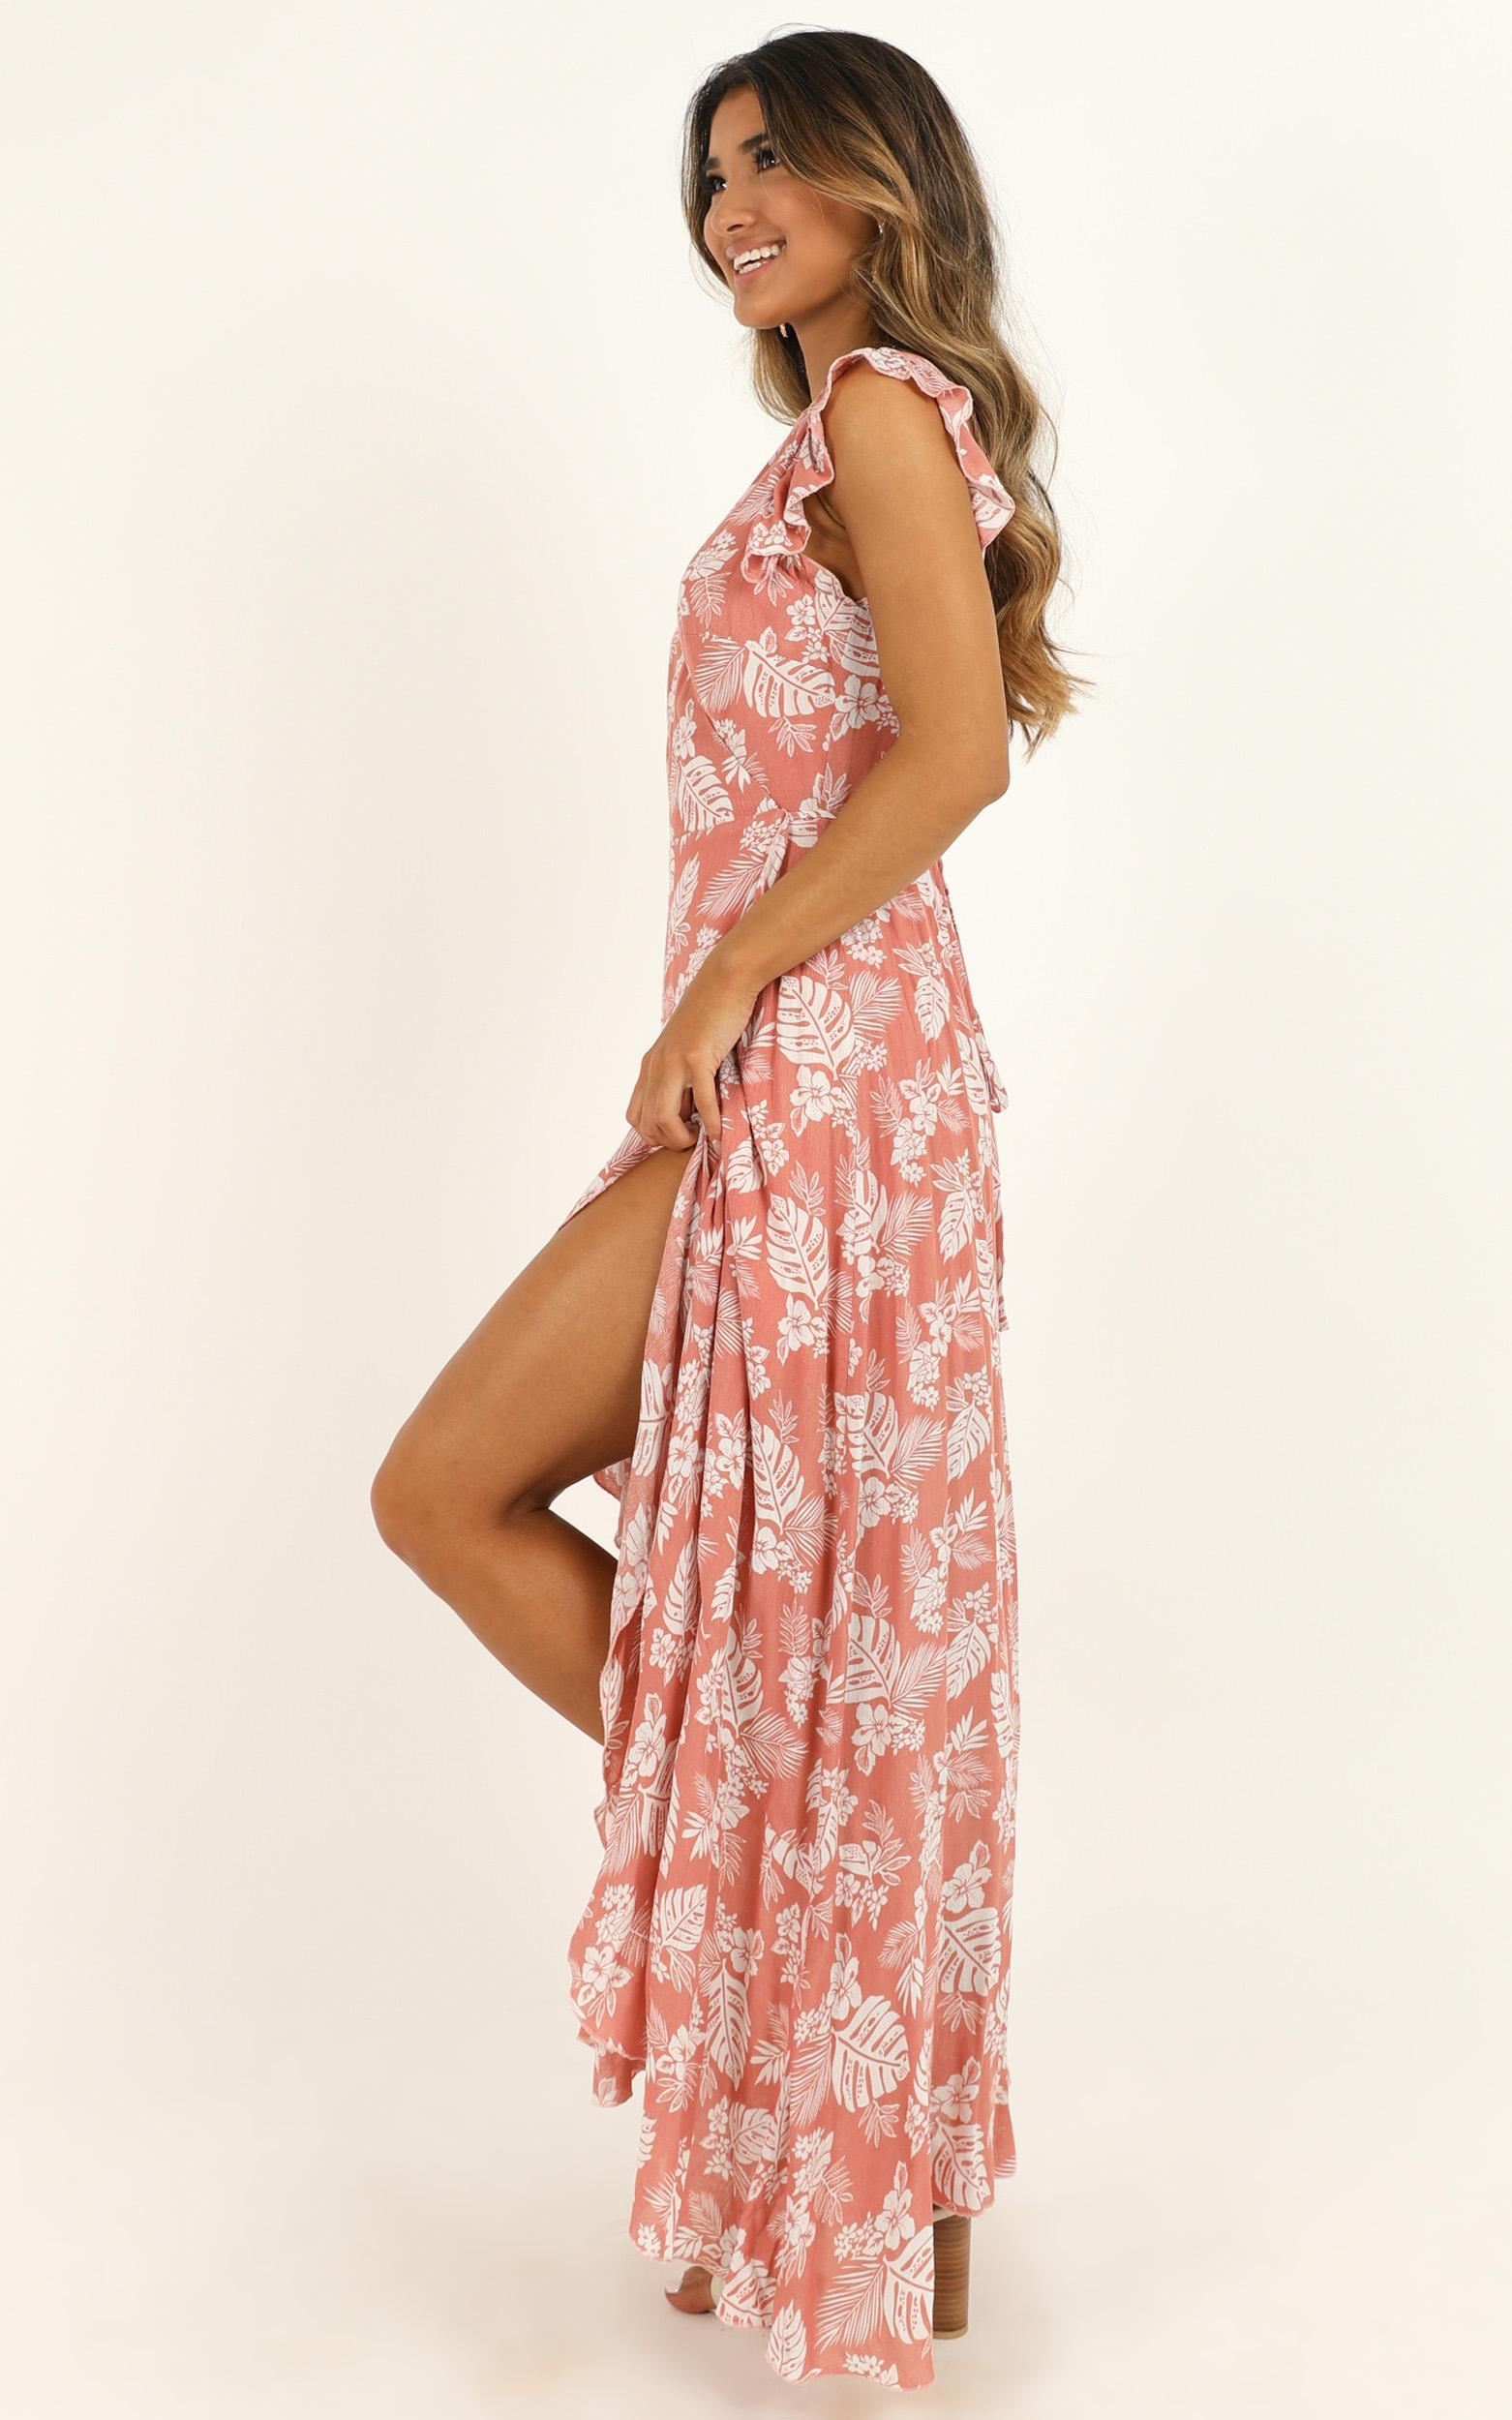 Curating Love Maxi Dress in coral floral  - 20 (XXXXL), Pink, hi-res image number null